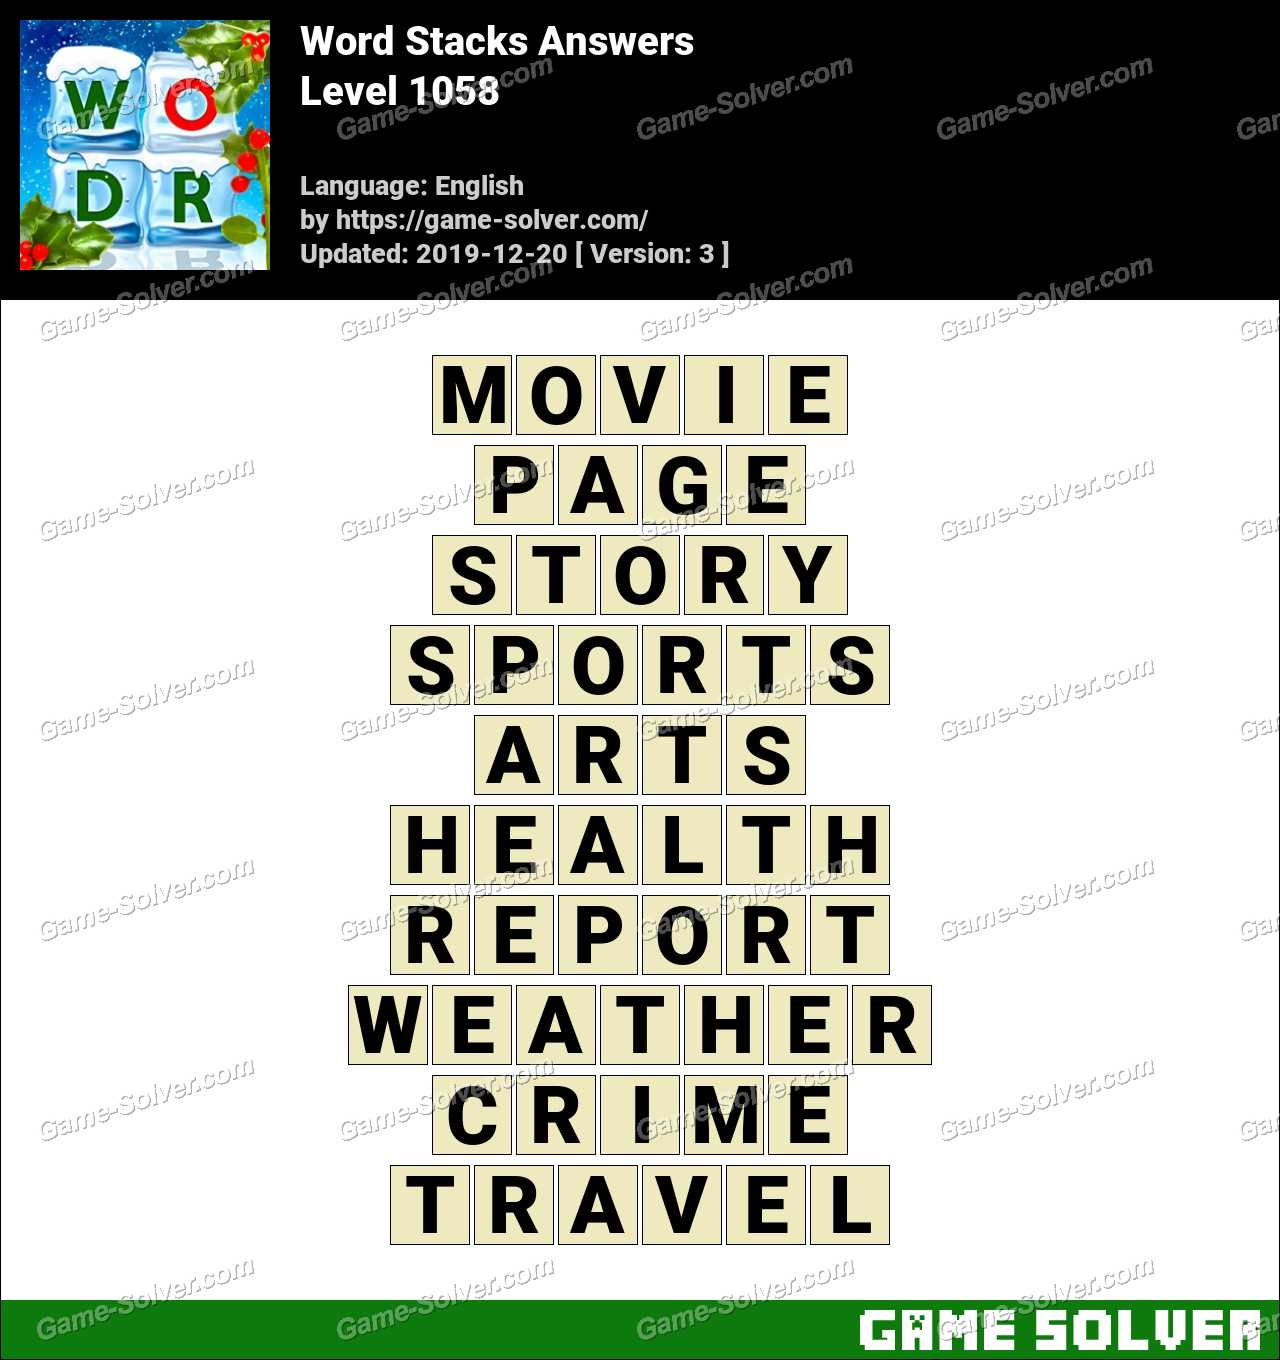 Word Stacks Level 1058 Answers